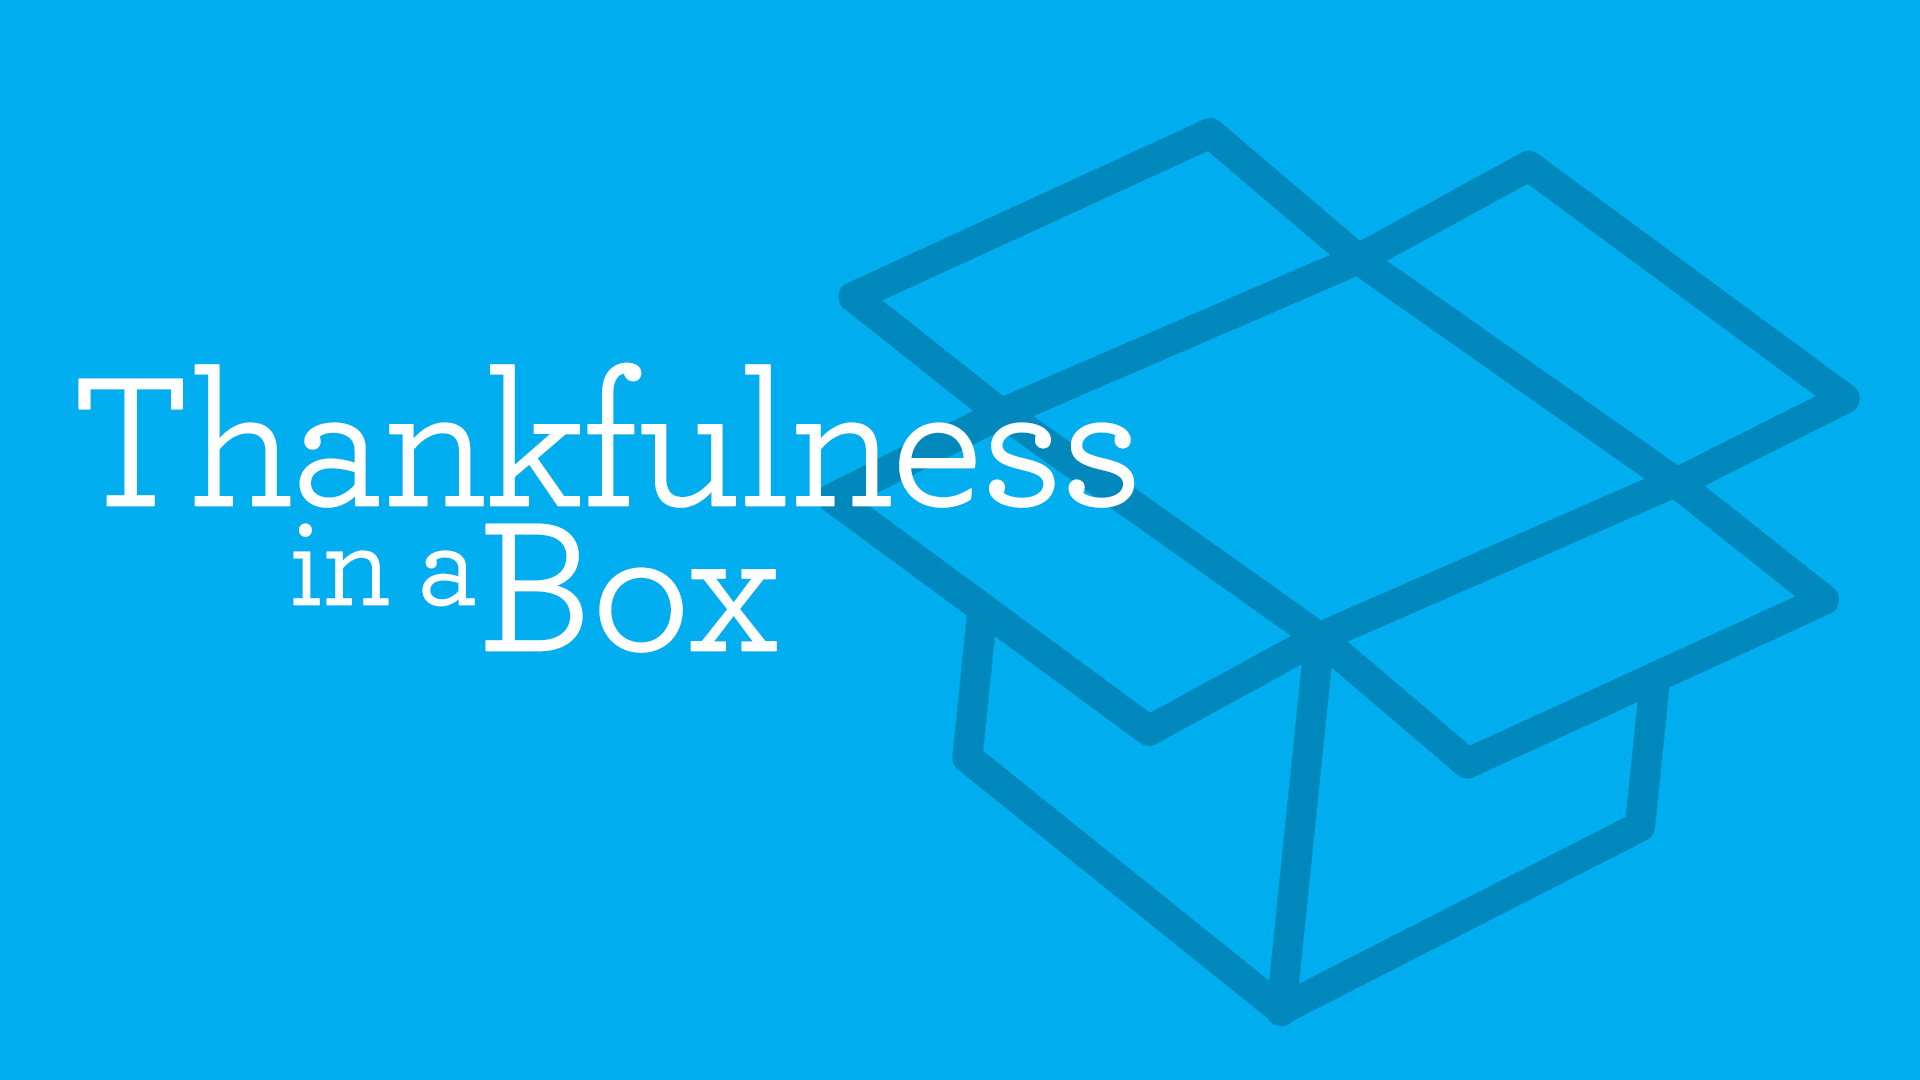 Thankfulness in a Box